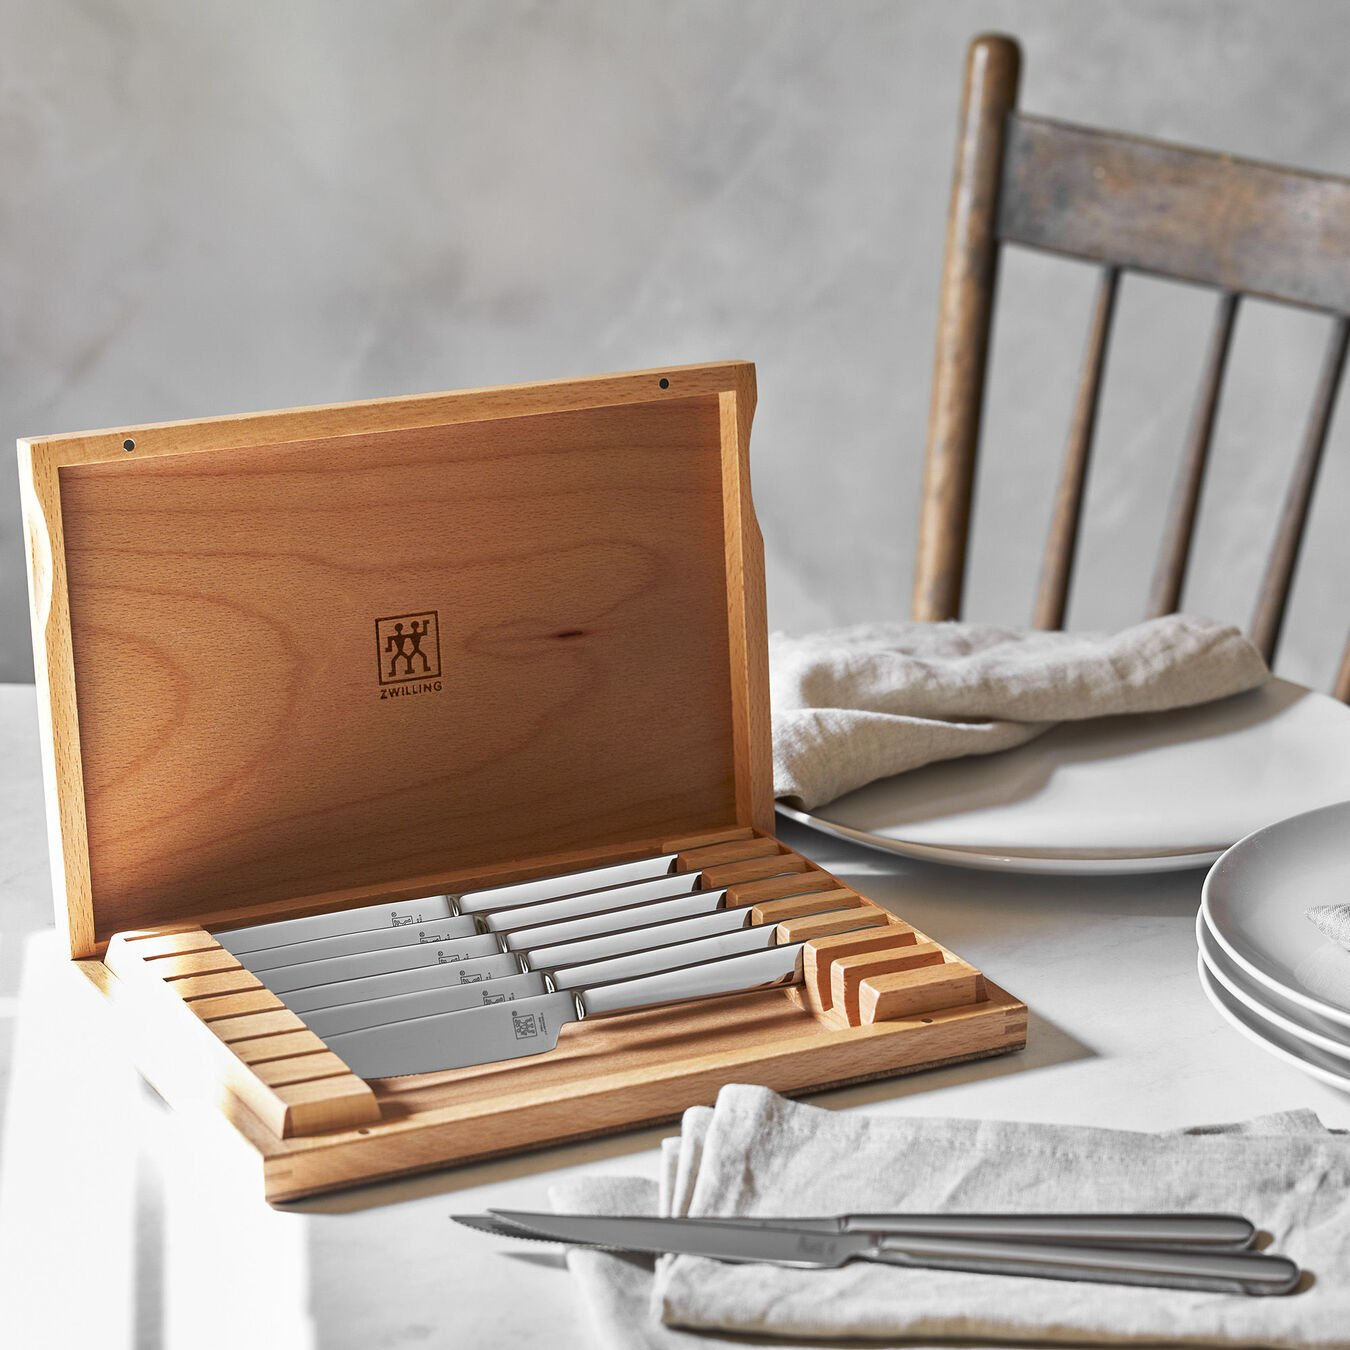 8-pc, Stainless Steel Steak Knife Set with Wood Presentation Case  ,,large 5